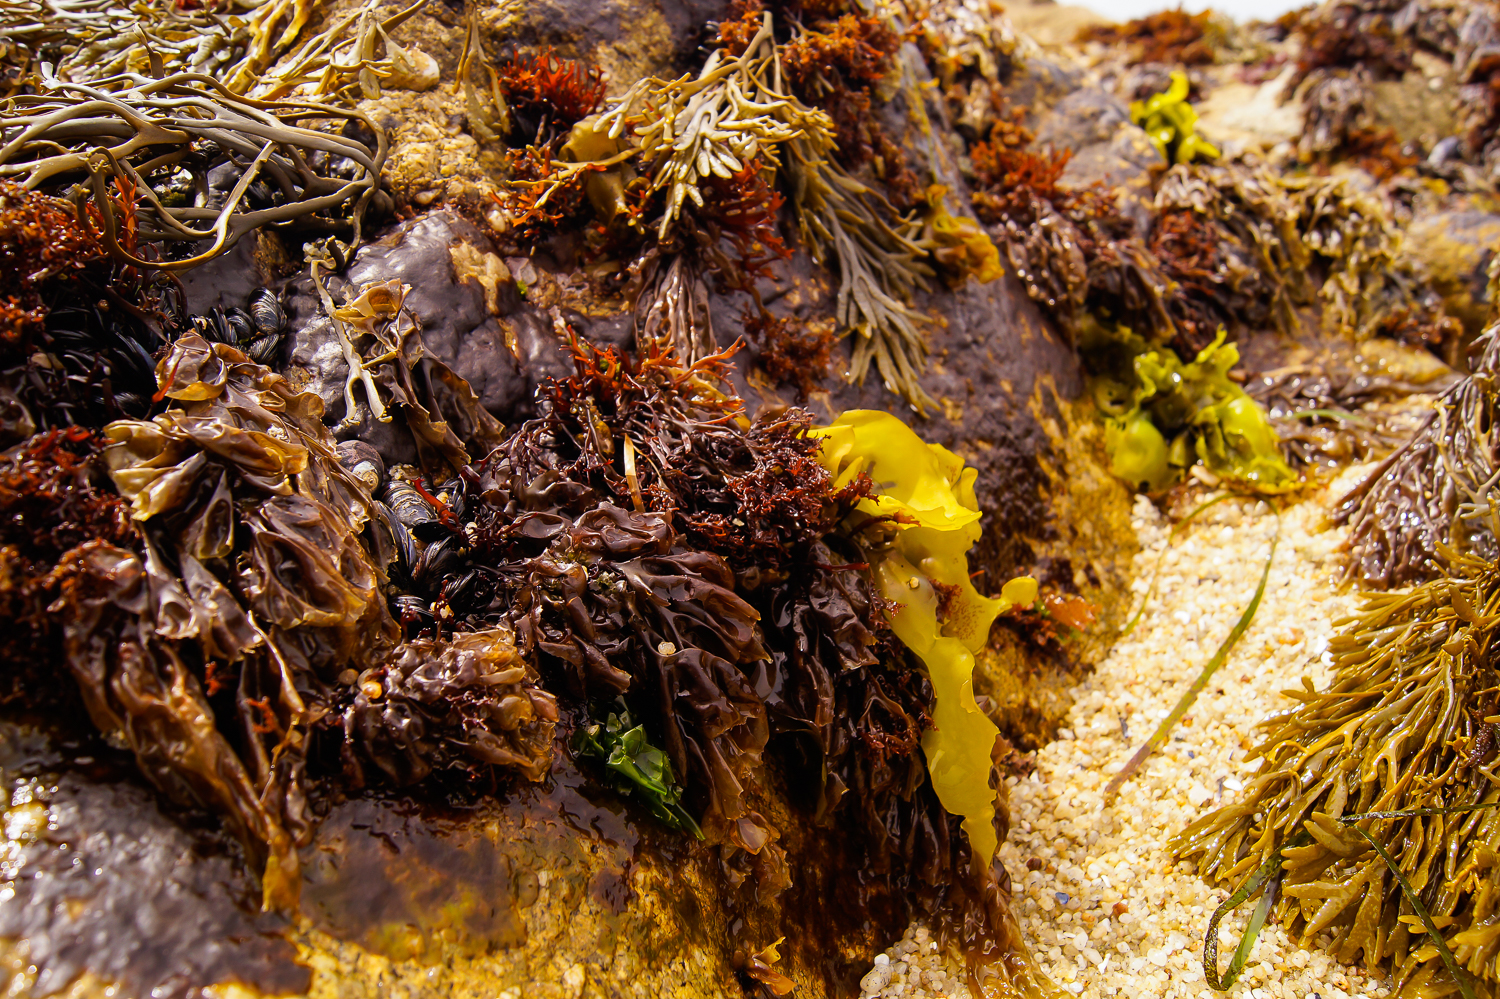 Colorful Seaweed